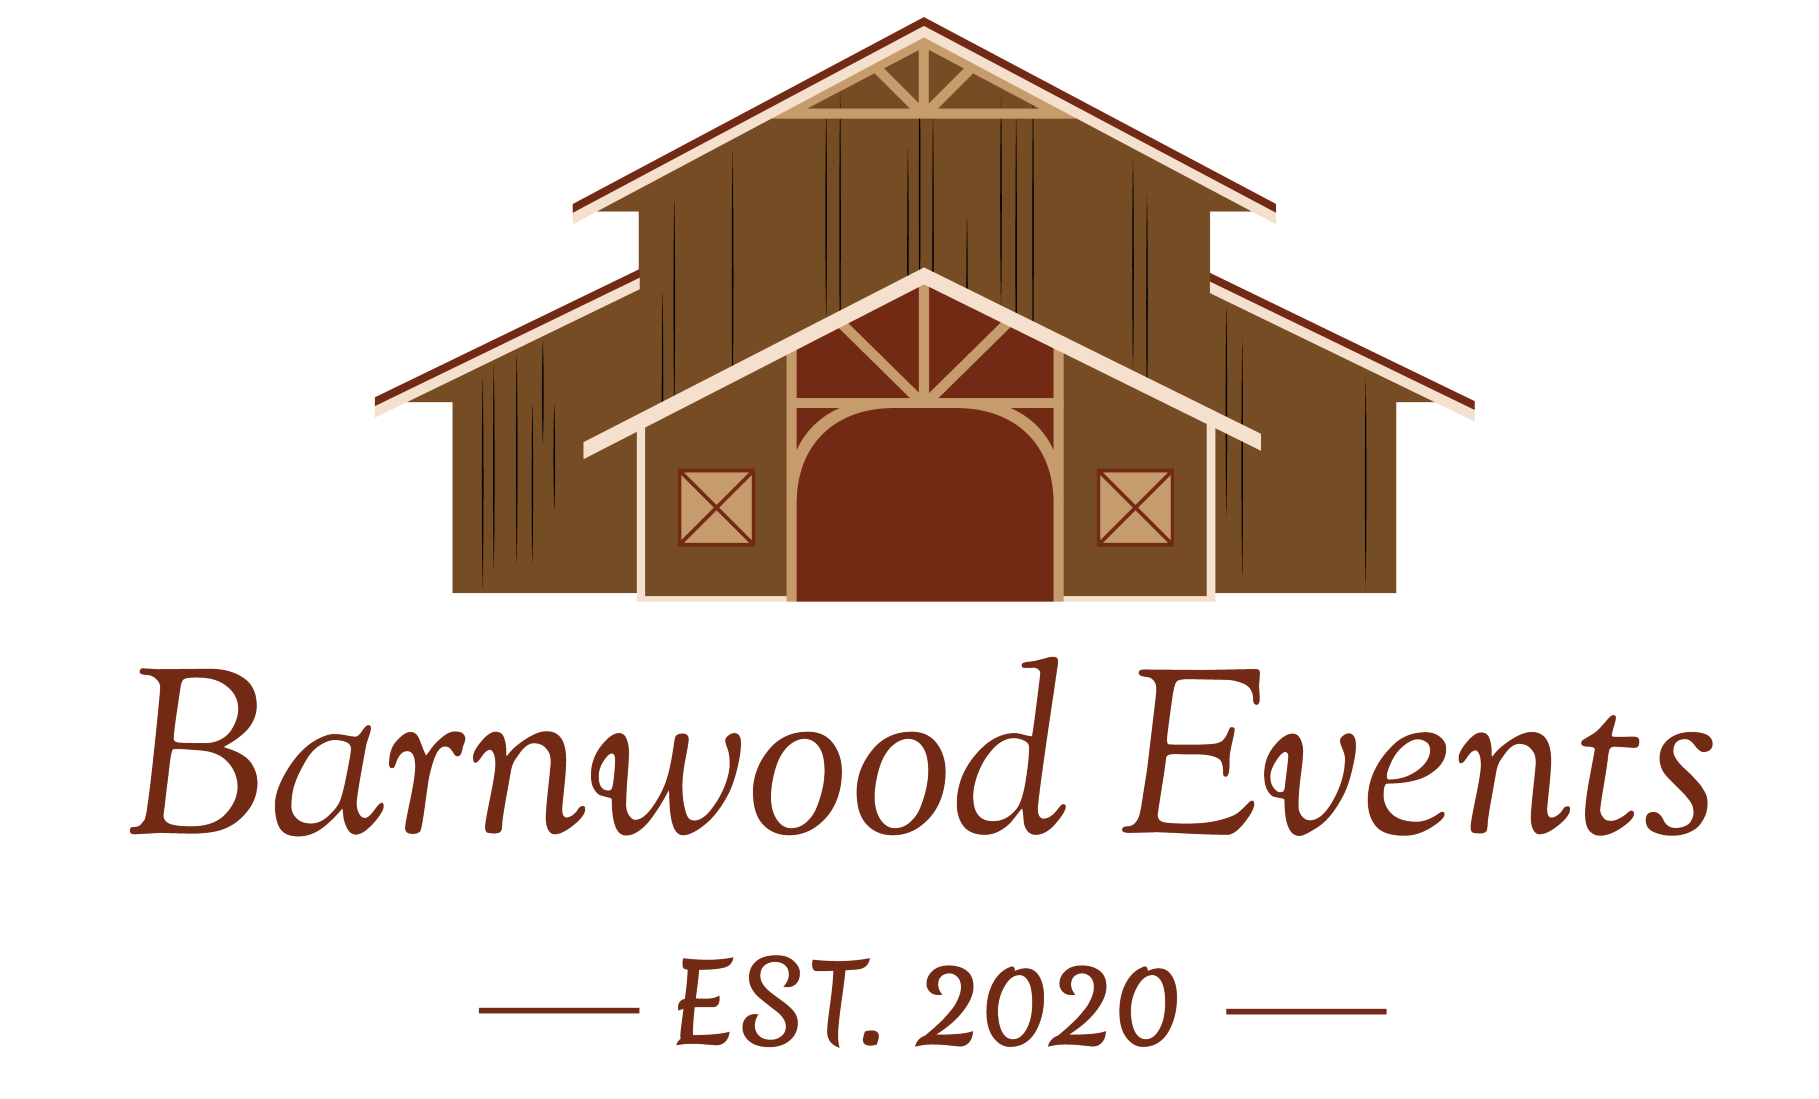 BarnWood Events